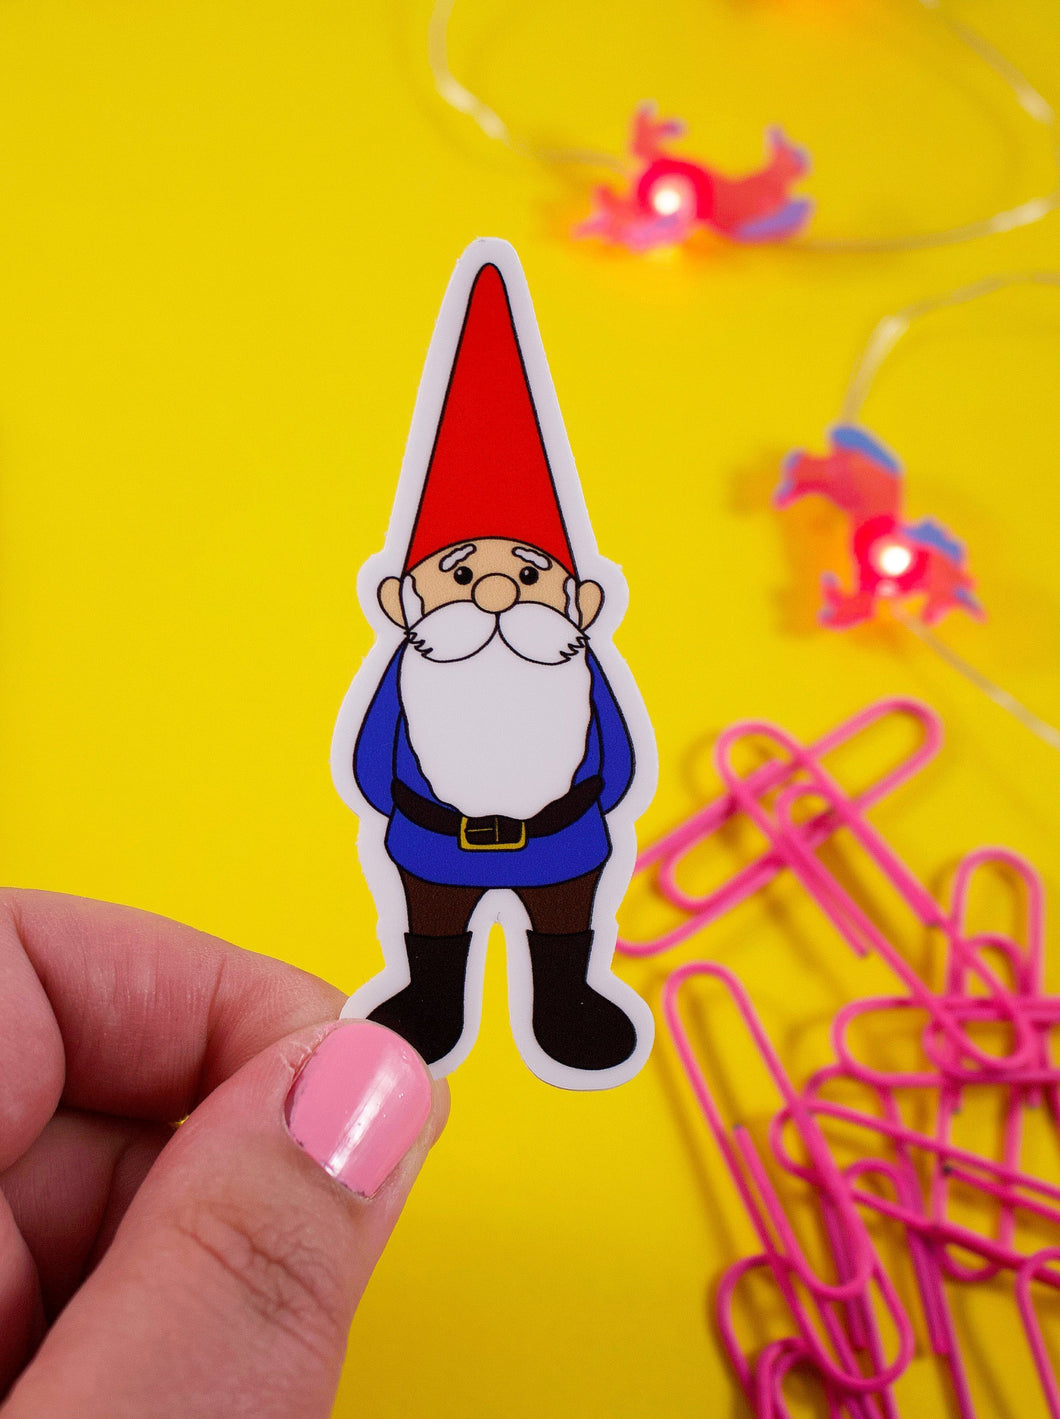 Happy Garden Gnome Vinyl Sticker: Water and Weather Proof!